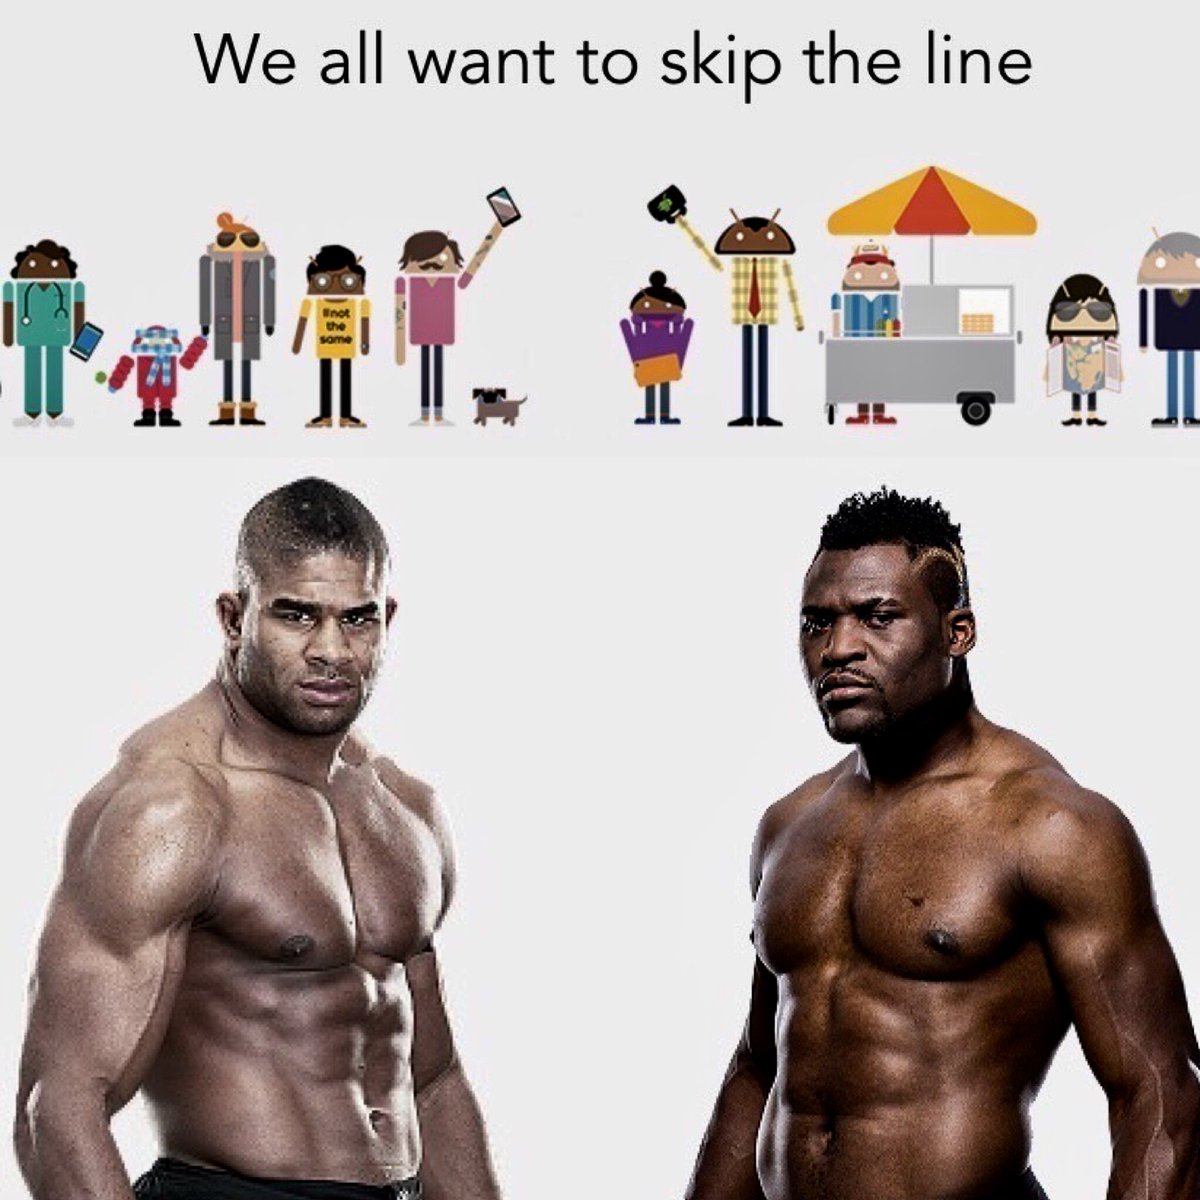 I heard someone is trying to skip the line. Can't allow such a thing to happen. So @francis_ngannou let's go! @ufc https://t.co/hwLBhdtMfk